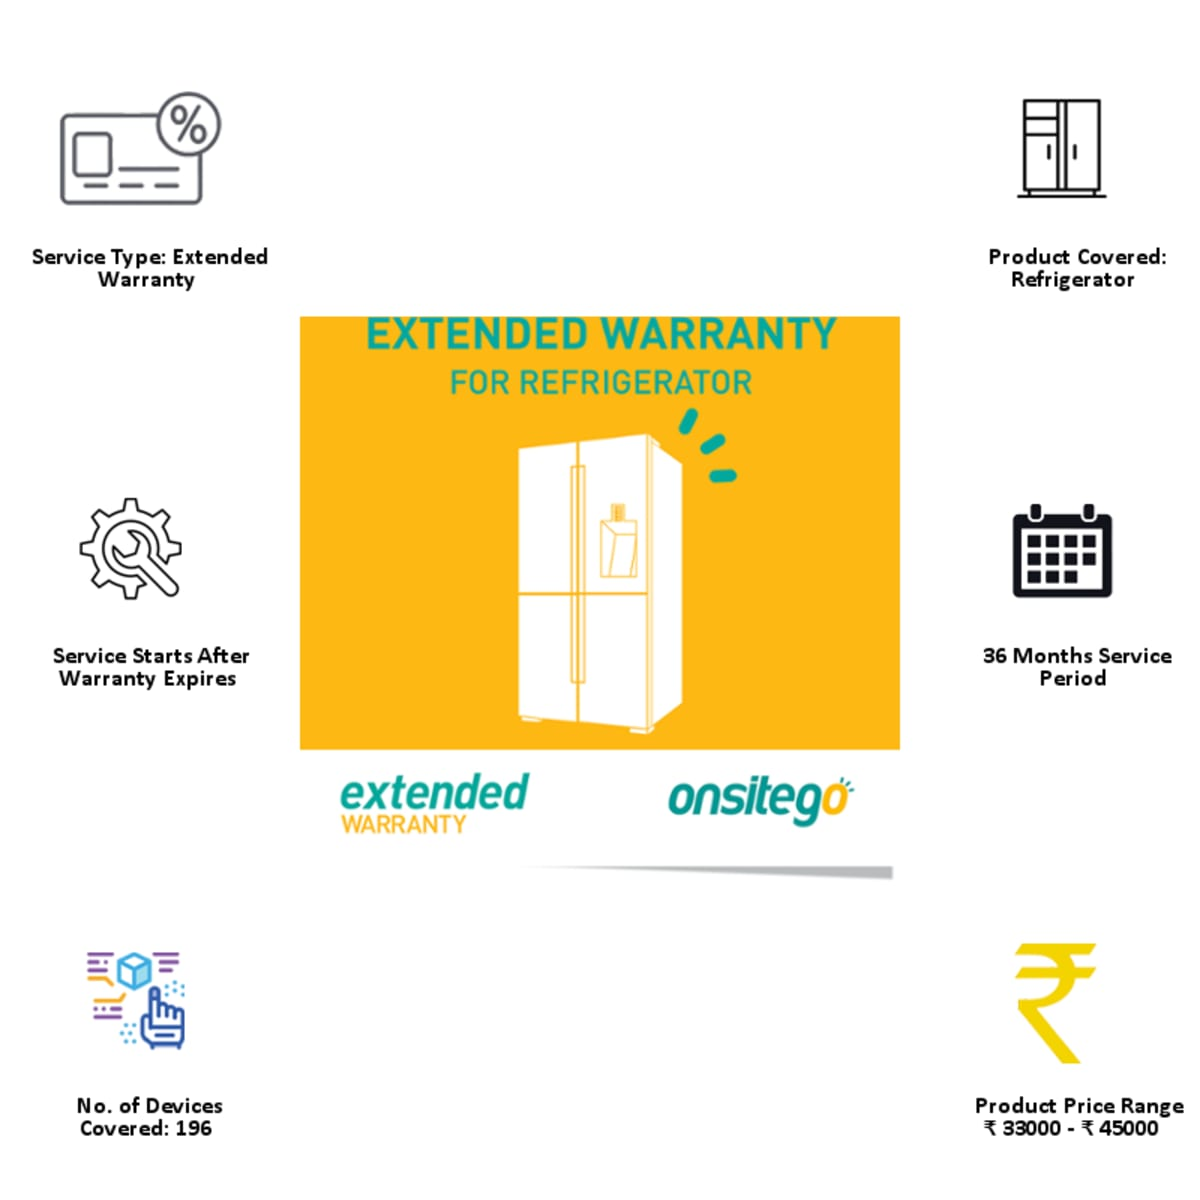 Onsitego 3 Year Extended Warranty for Refrigerator (Rs.33,000 - Rs.45,000)_8